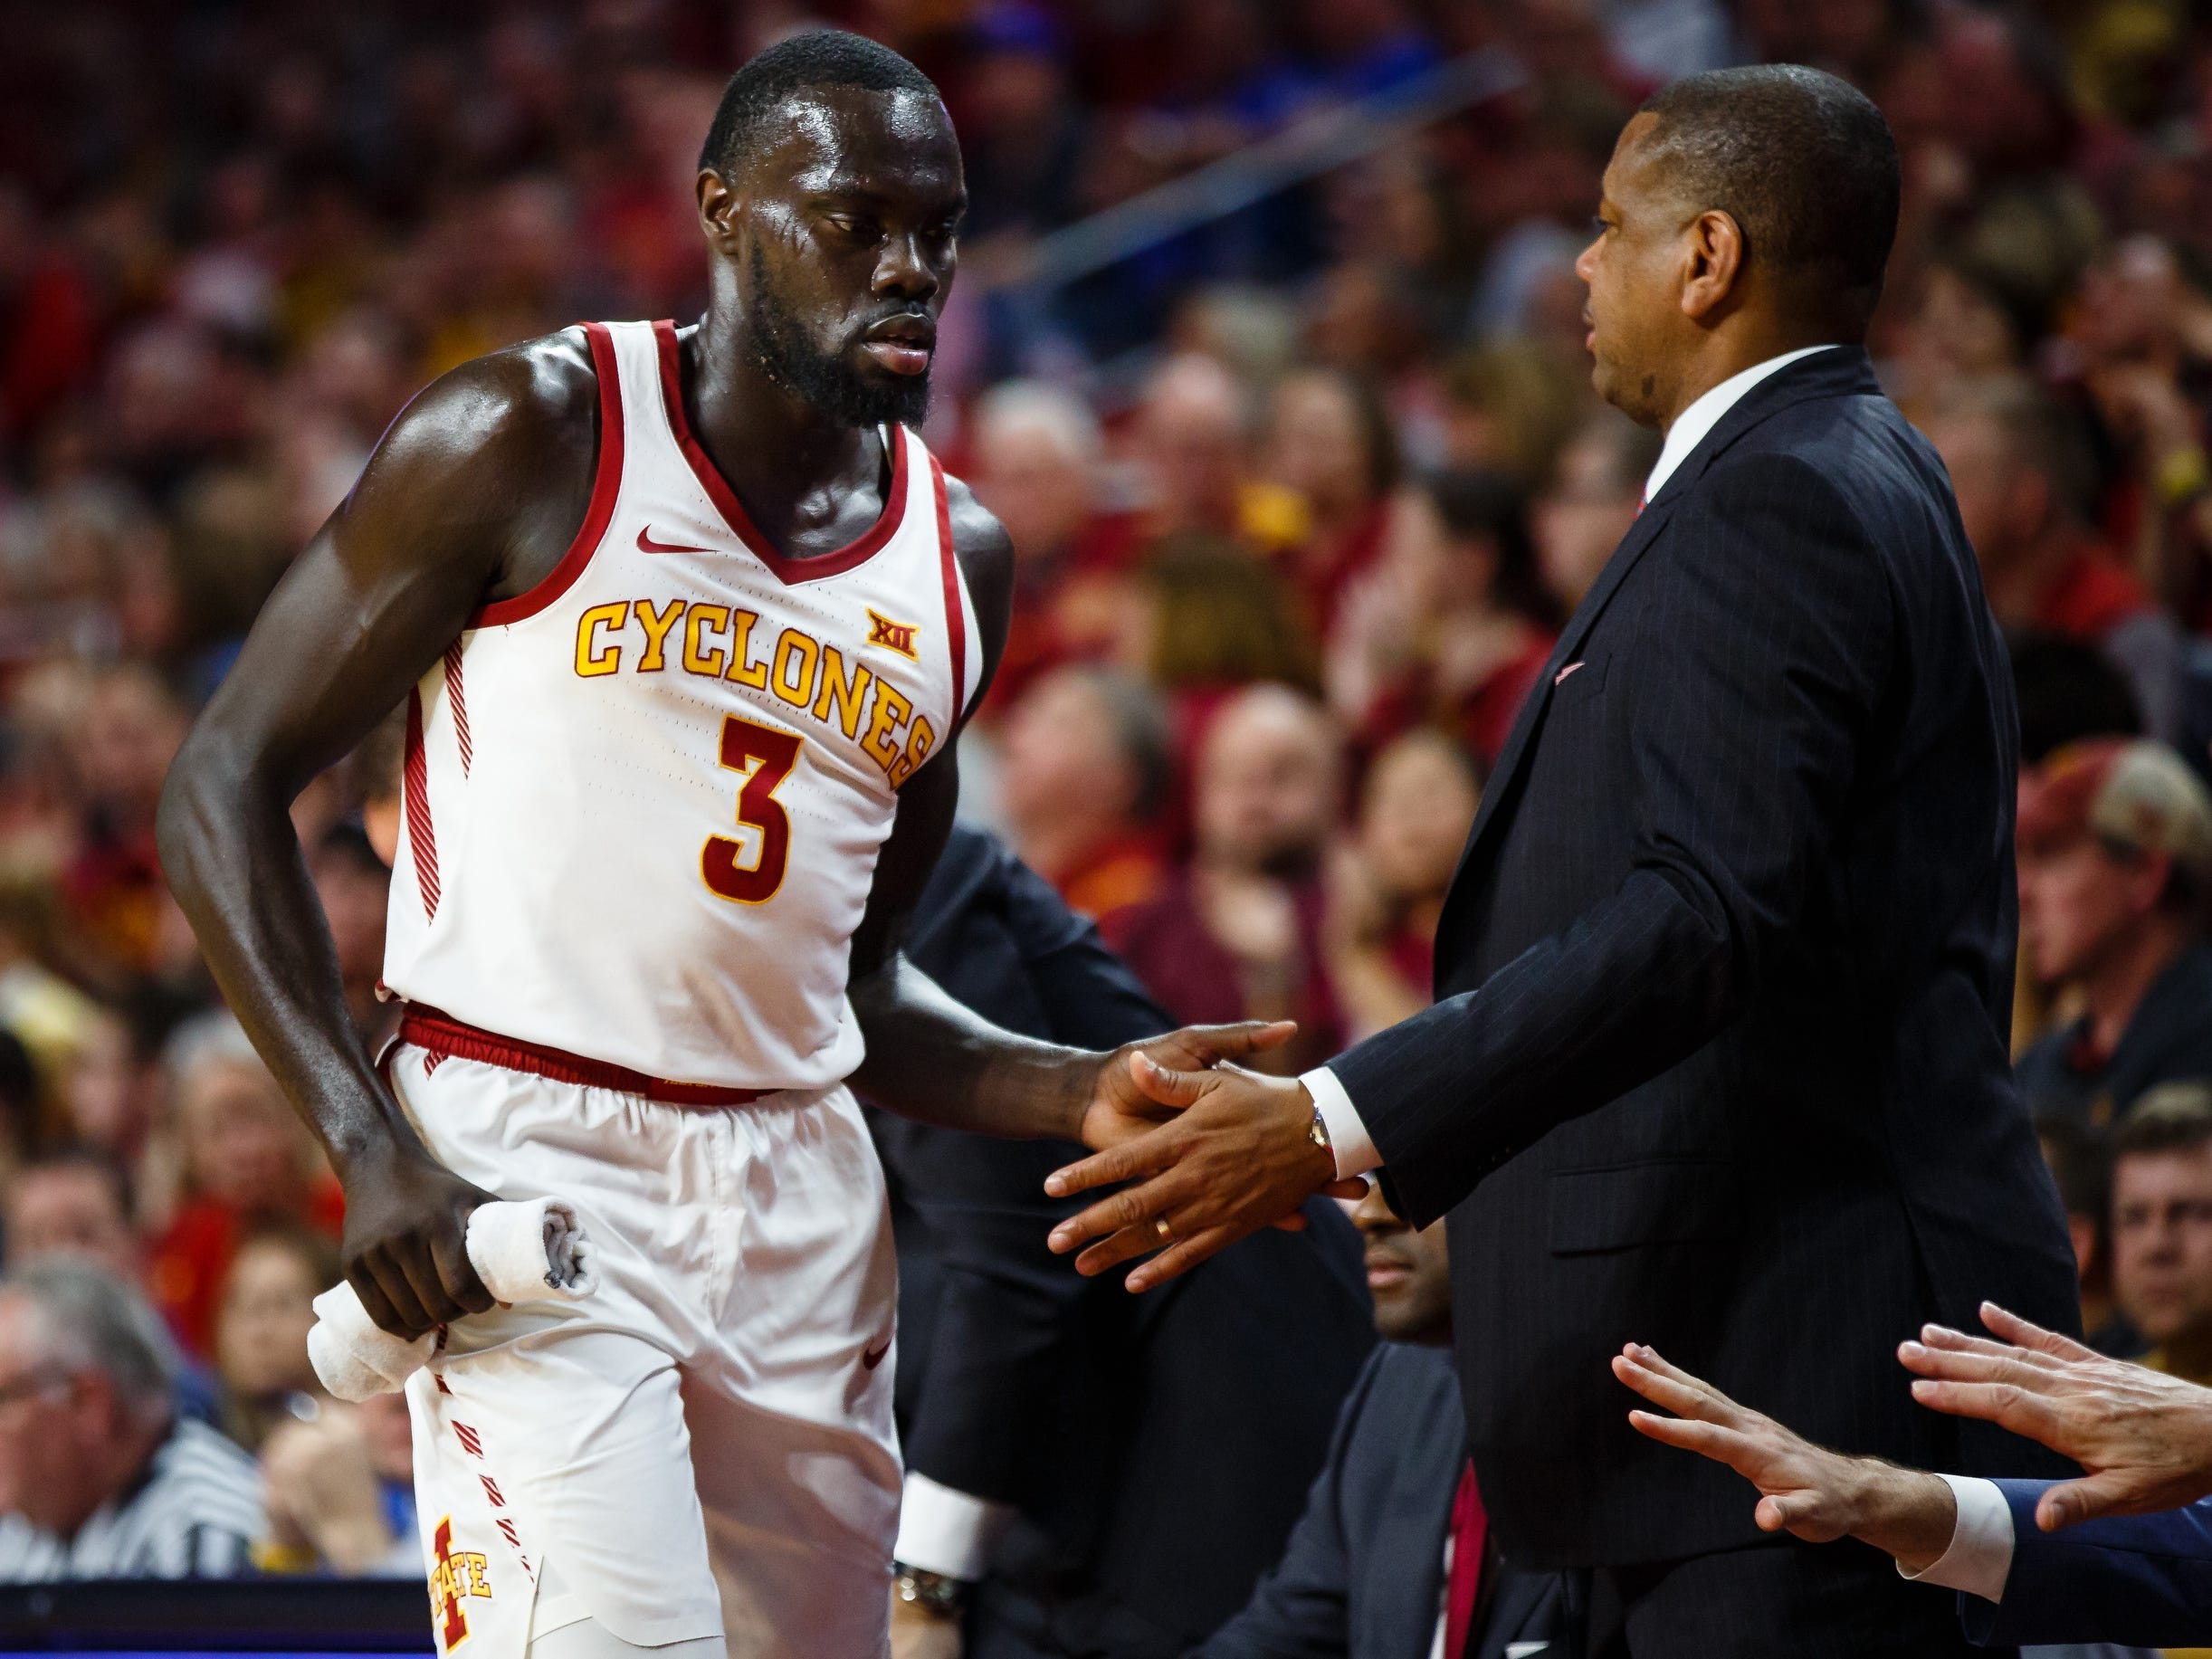 Iowa State's Marial Shayok (3) gets high fives on the bench during the first half of their basketball game on Saturday, Jan. 5, 2019, in Ames. Iowa State would go on to win 77-60.